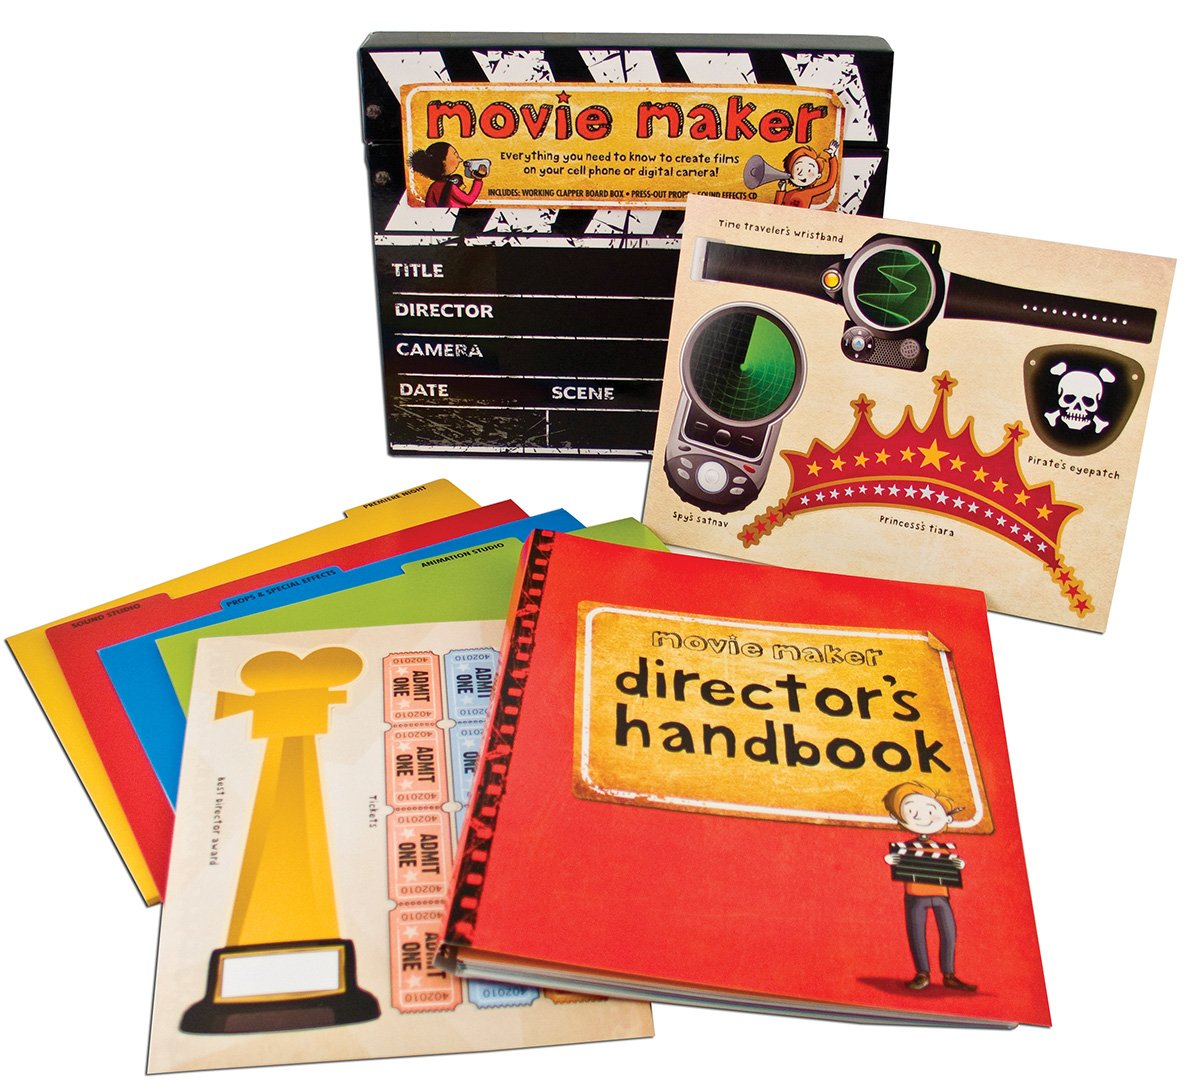 Uncategorized How To Make A Movie For Kids movie maker the ultimate guide to making films tim grabham suridh hassan dave reeve clare richards garry parsons 9780763649494